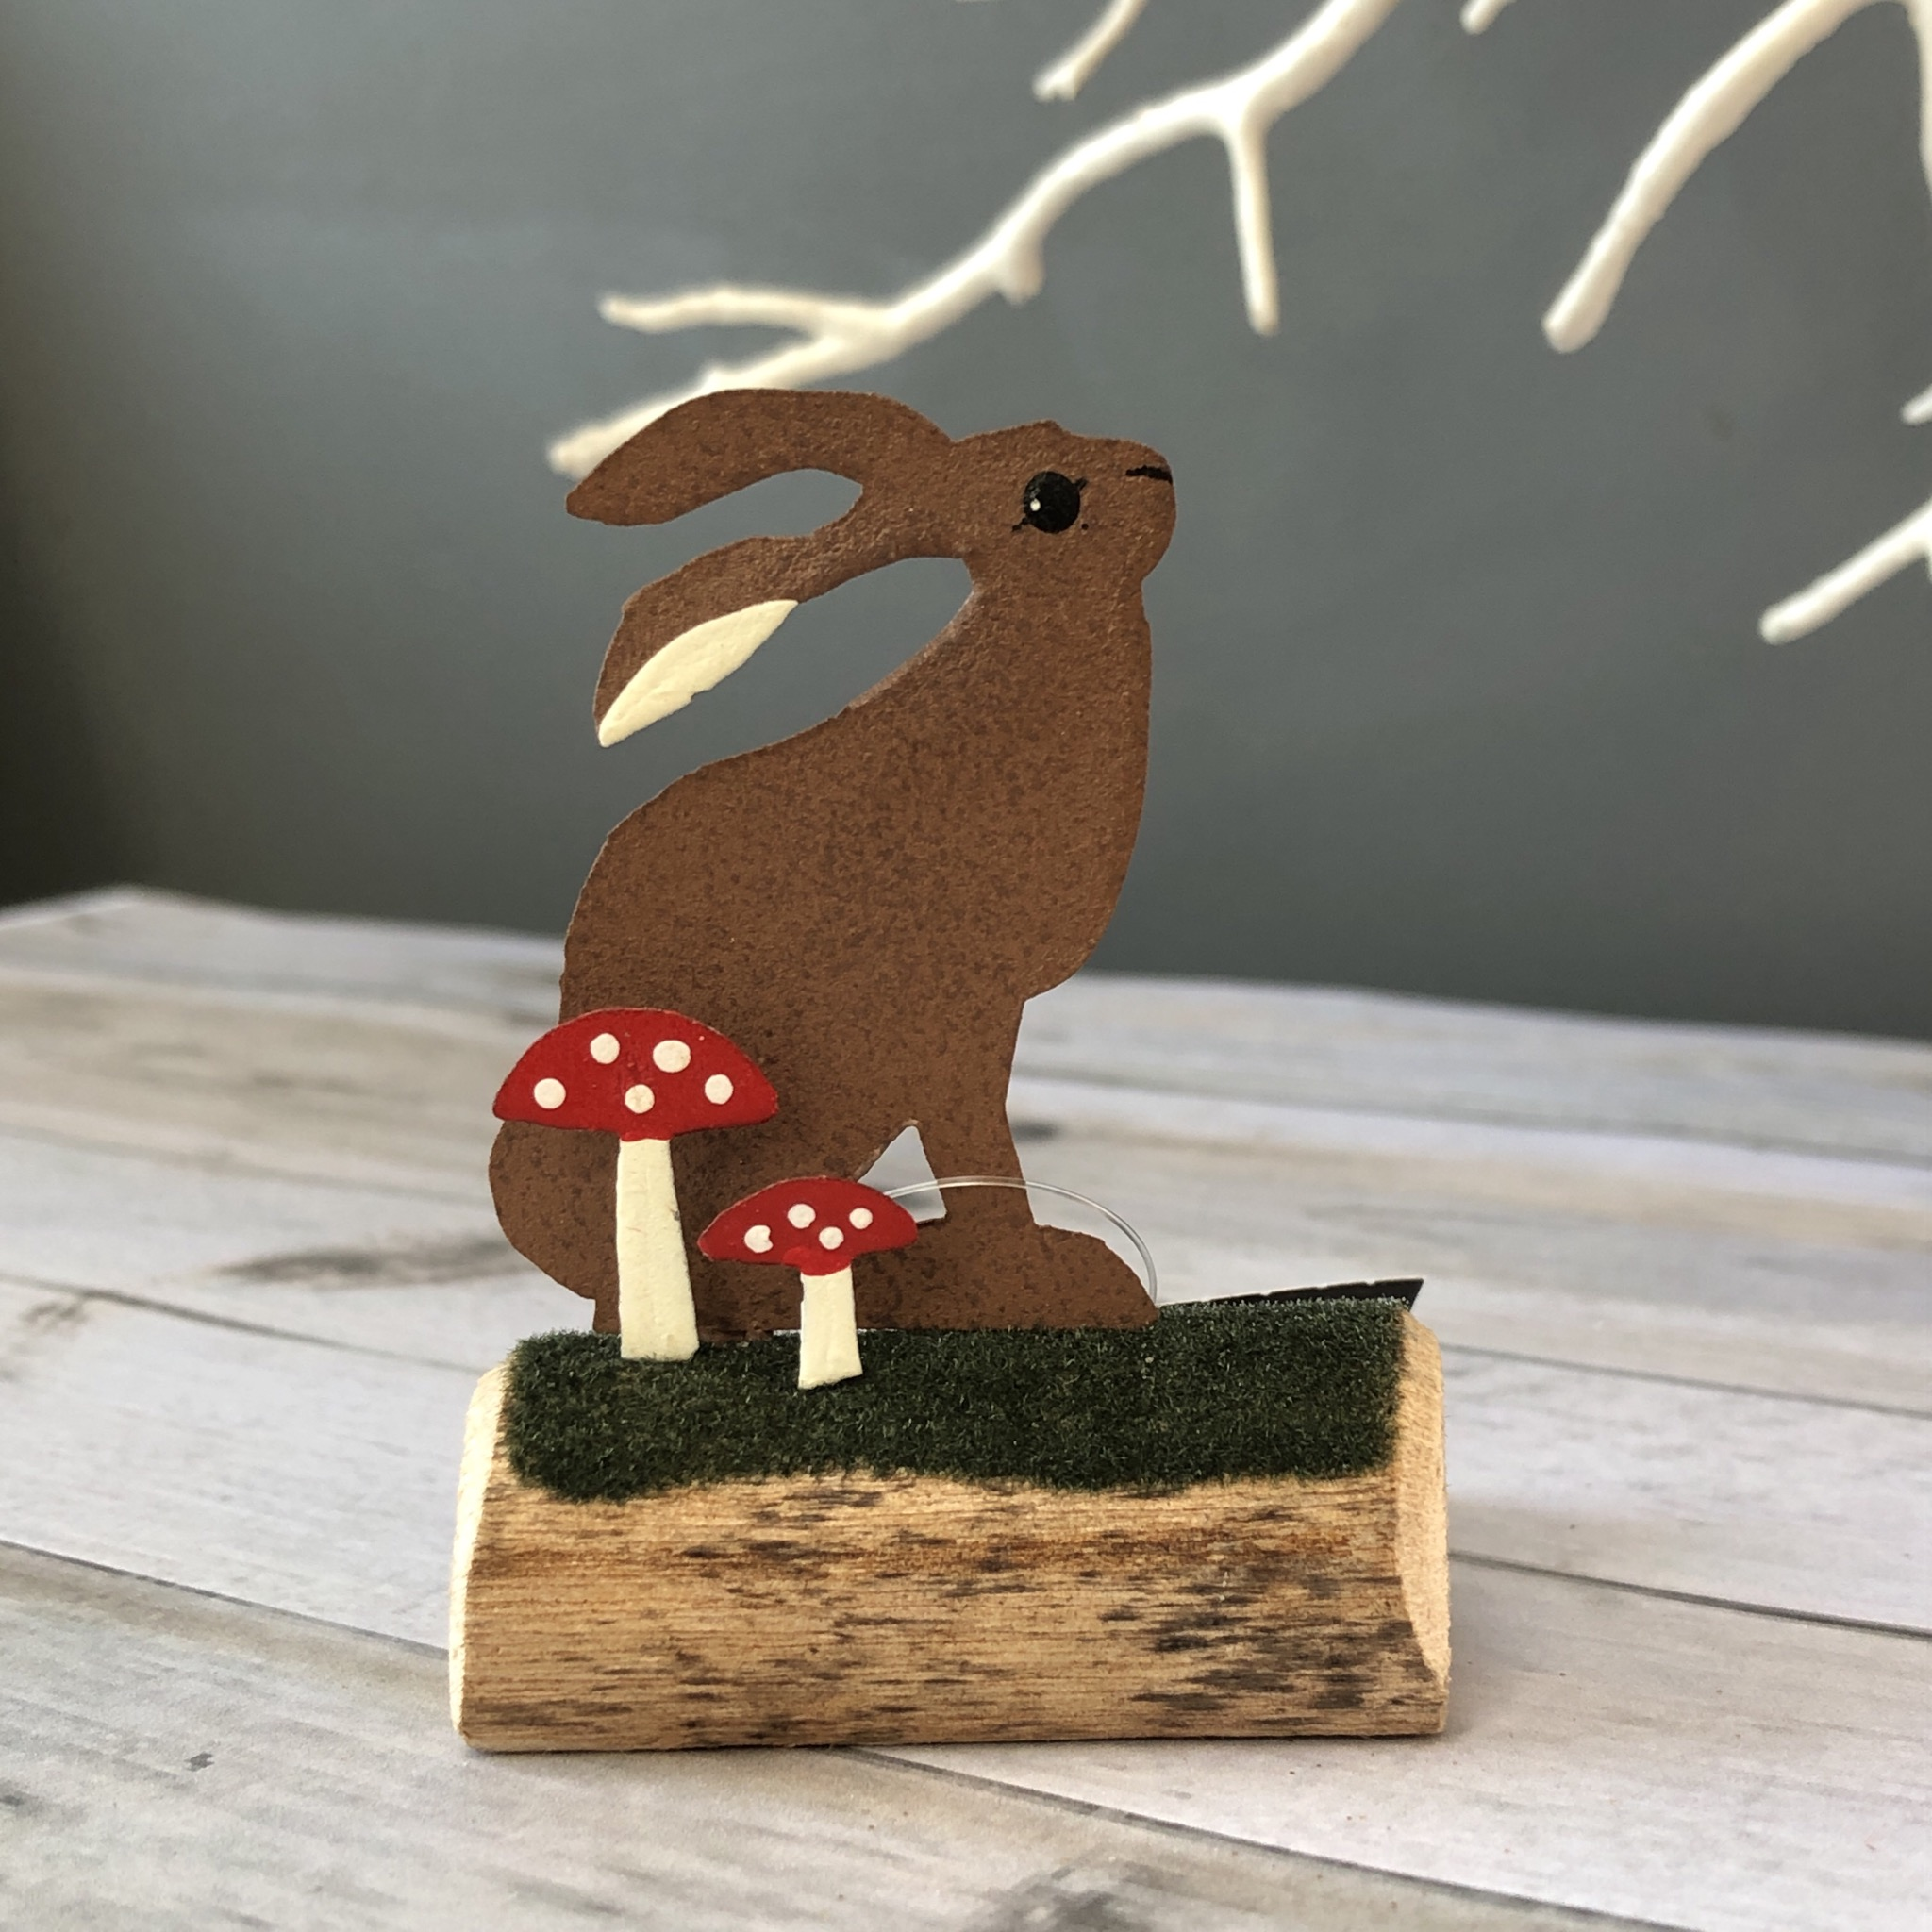 Hare sitting on log standing ornament by shoeless joe